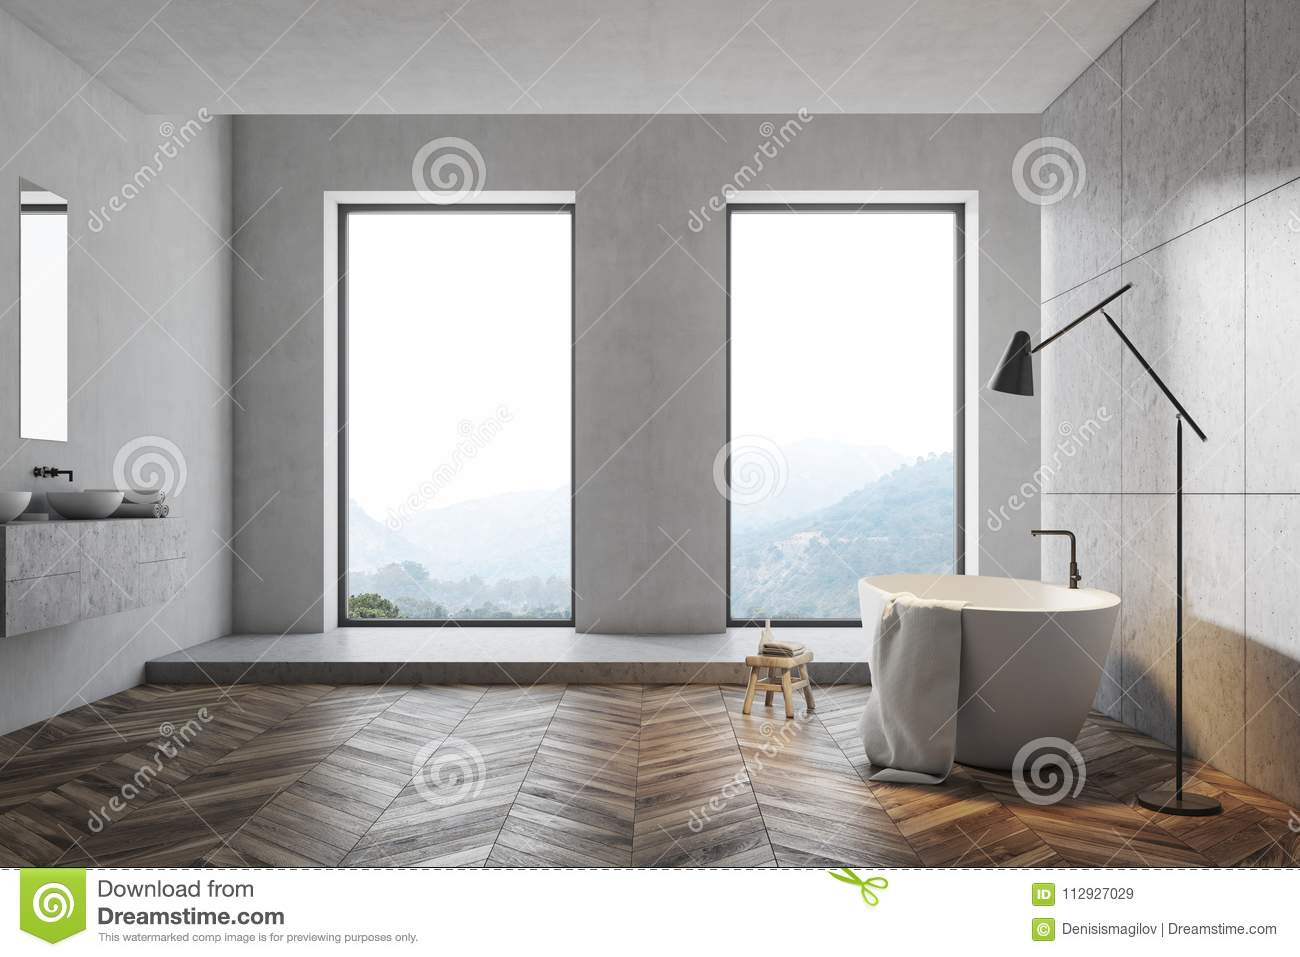 Modern gray bathroom idea stock illustration. Illustration of ...